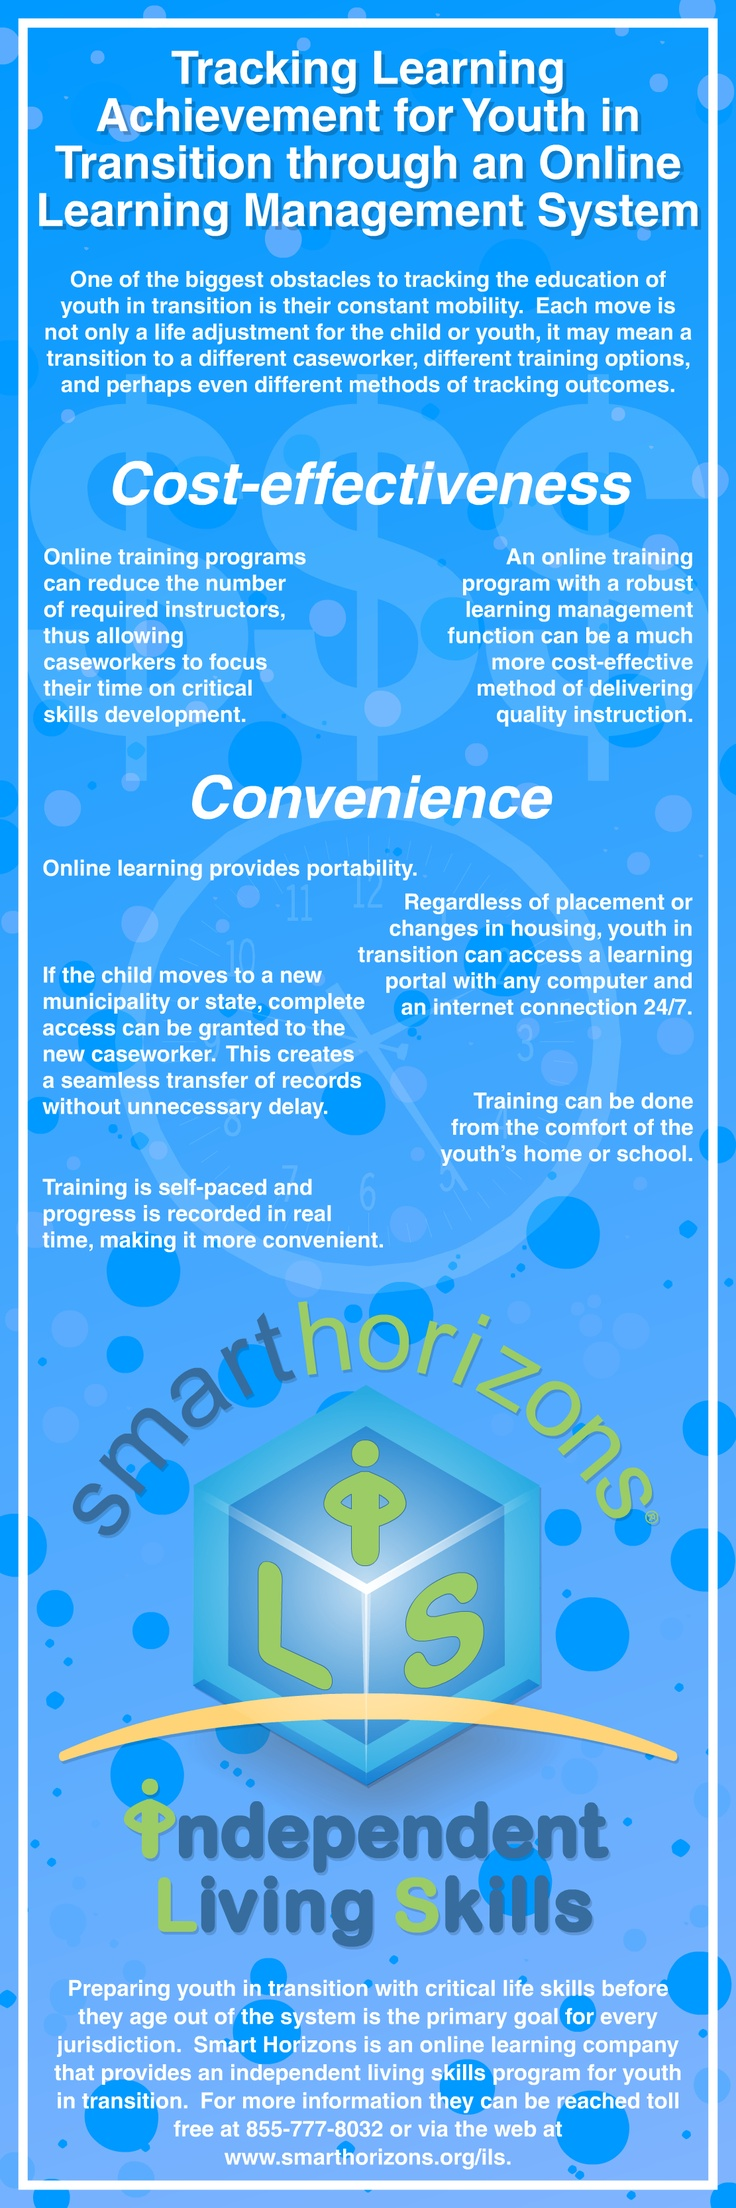 Tracking learning achievement of adults and youth in transition using an online learning management system.